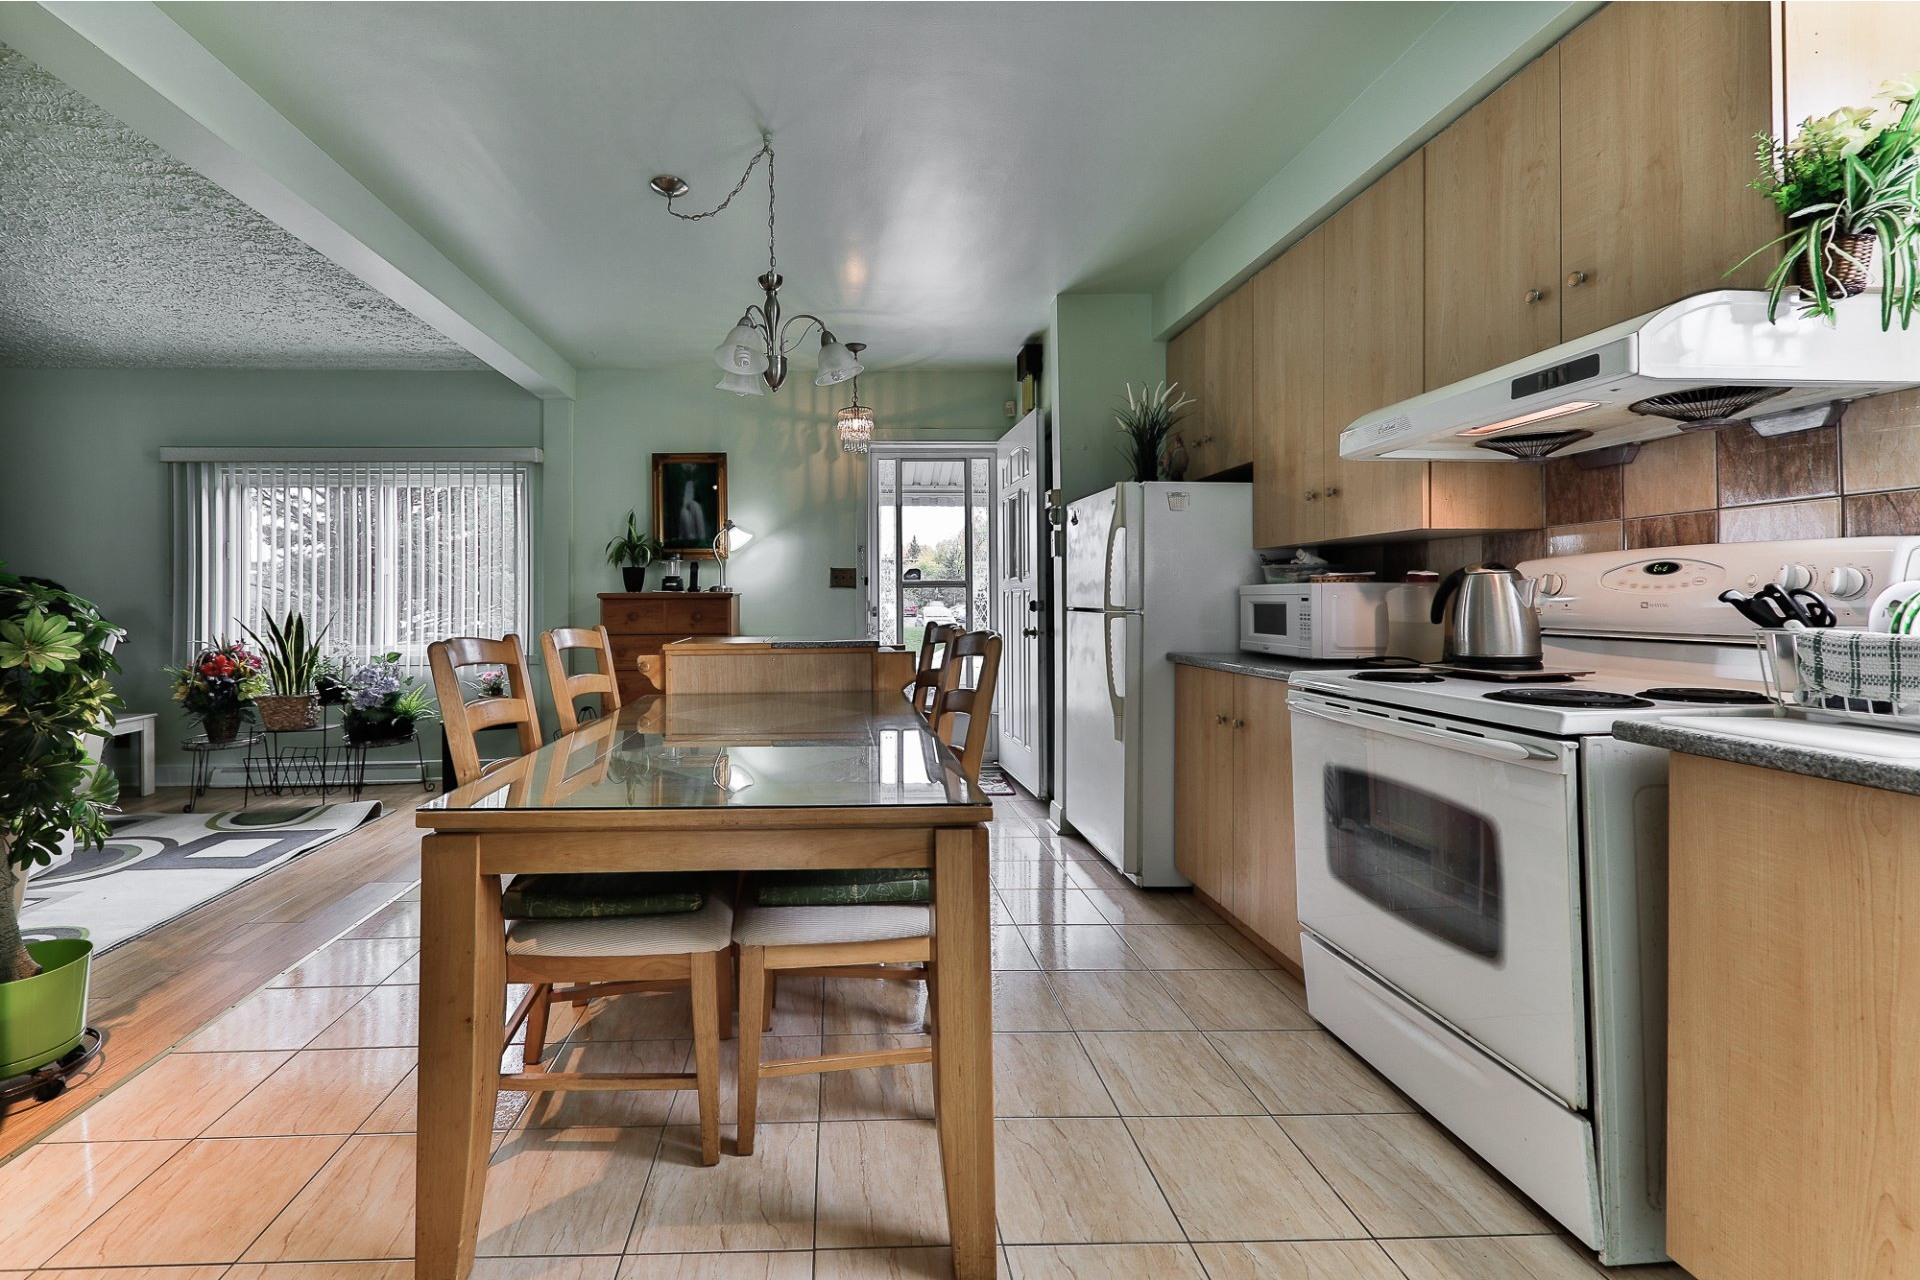 image 20 - House For sale Ahuntsic-Cartierville Montréal  - 8 rooms